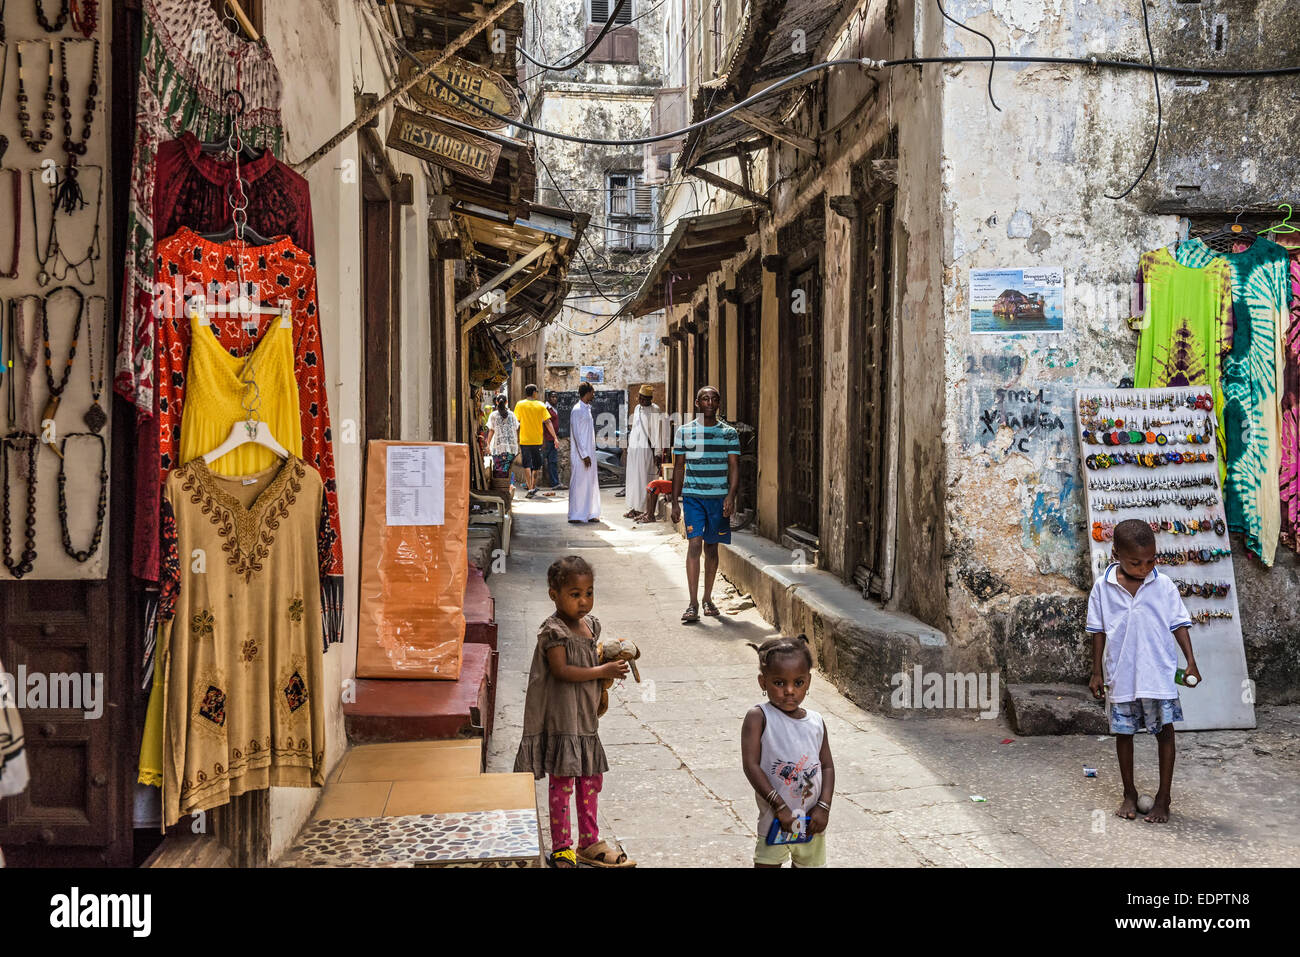 Local people on a typical narrow street in Stone Town, Zanzibar - Stock Image